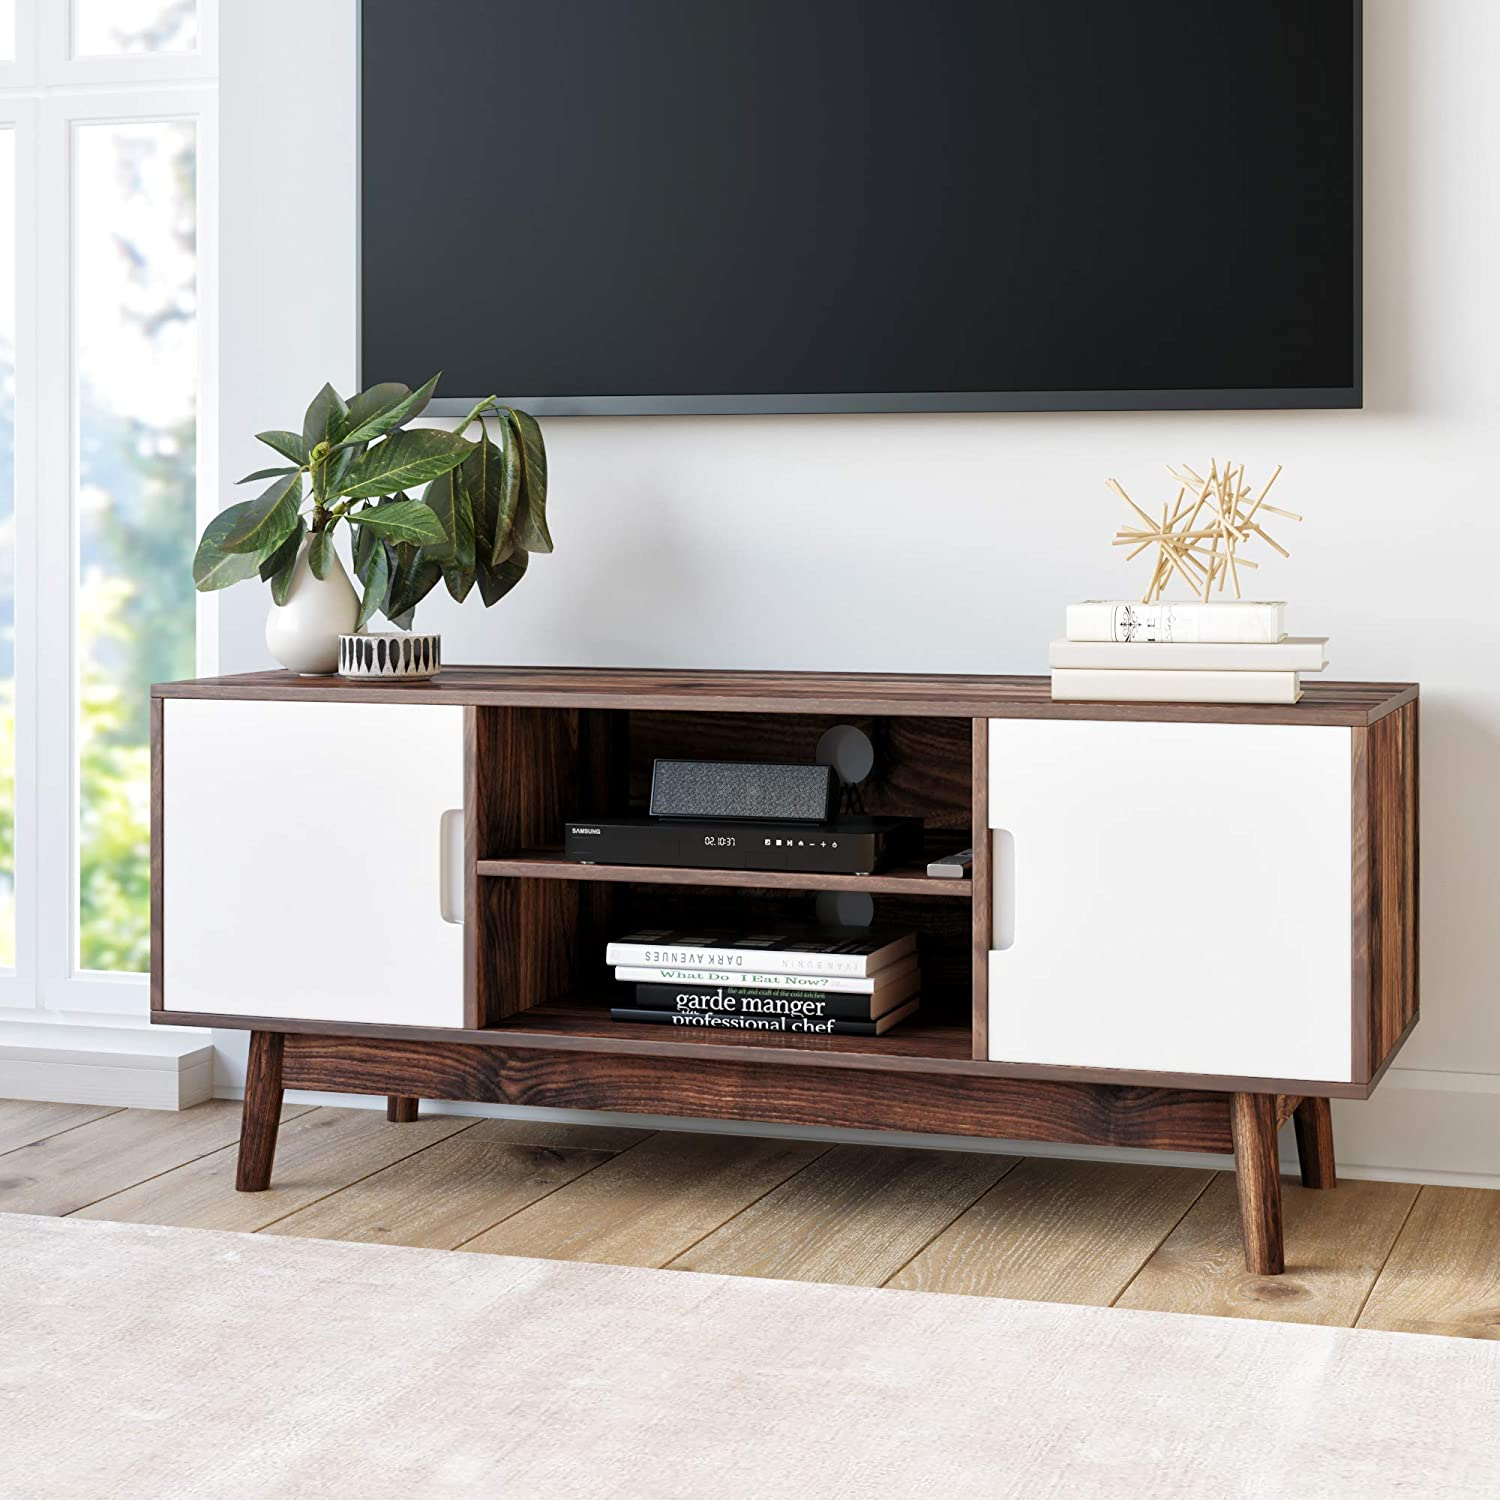 Best Tv Stands To Upgrade Your Home, Living Room Entertainment Center